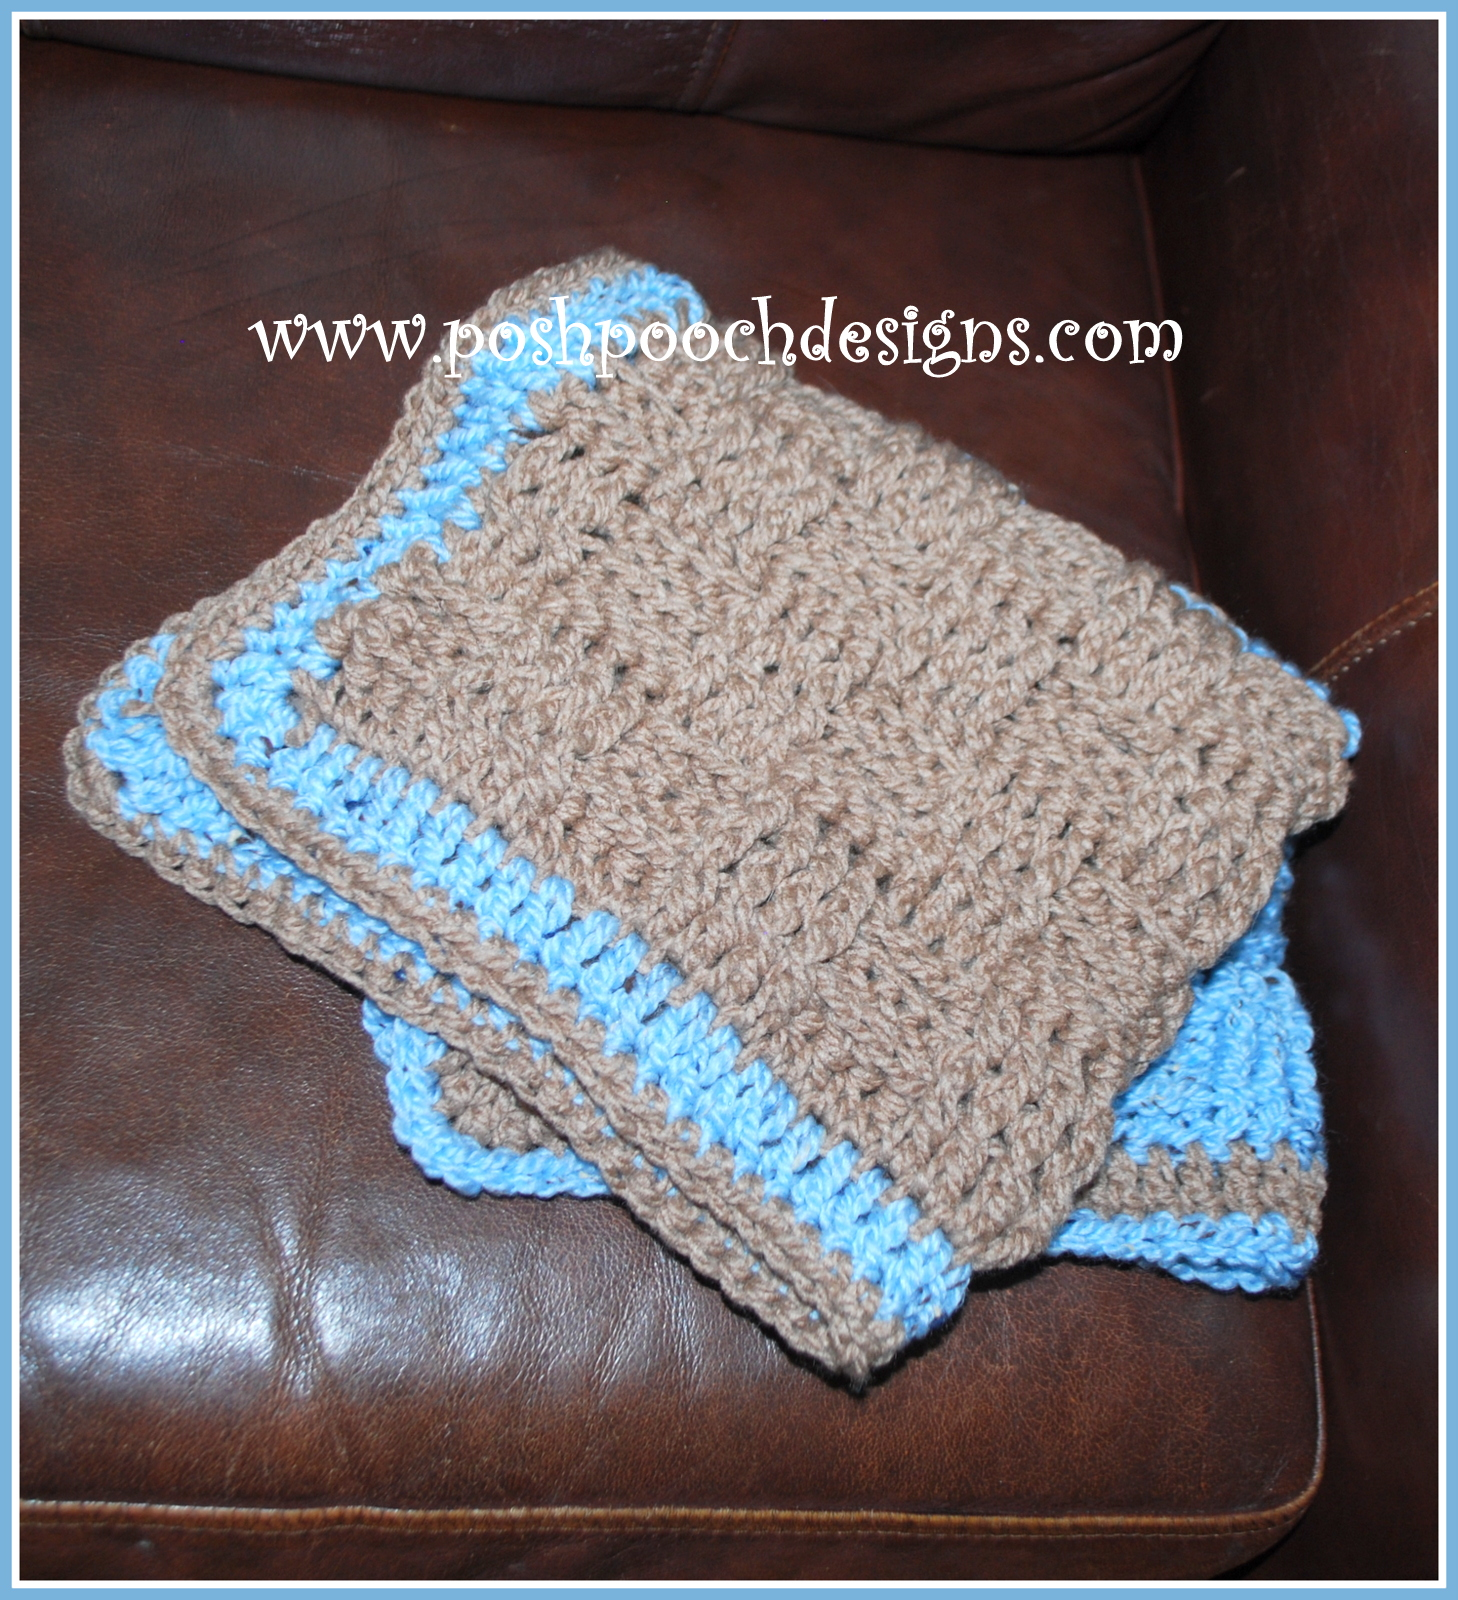 Free Crochet Patterns For Dog Blankets : Posh Pooch Designs Dog Clothes: Crochet pattern for a Dog ...